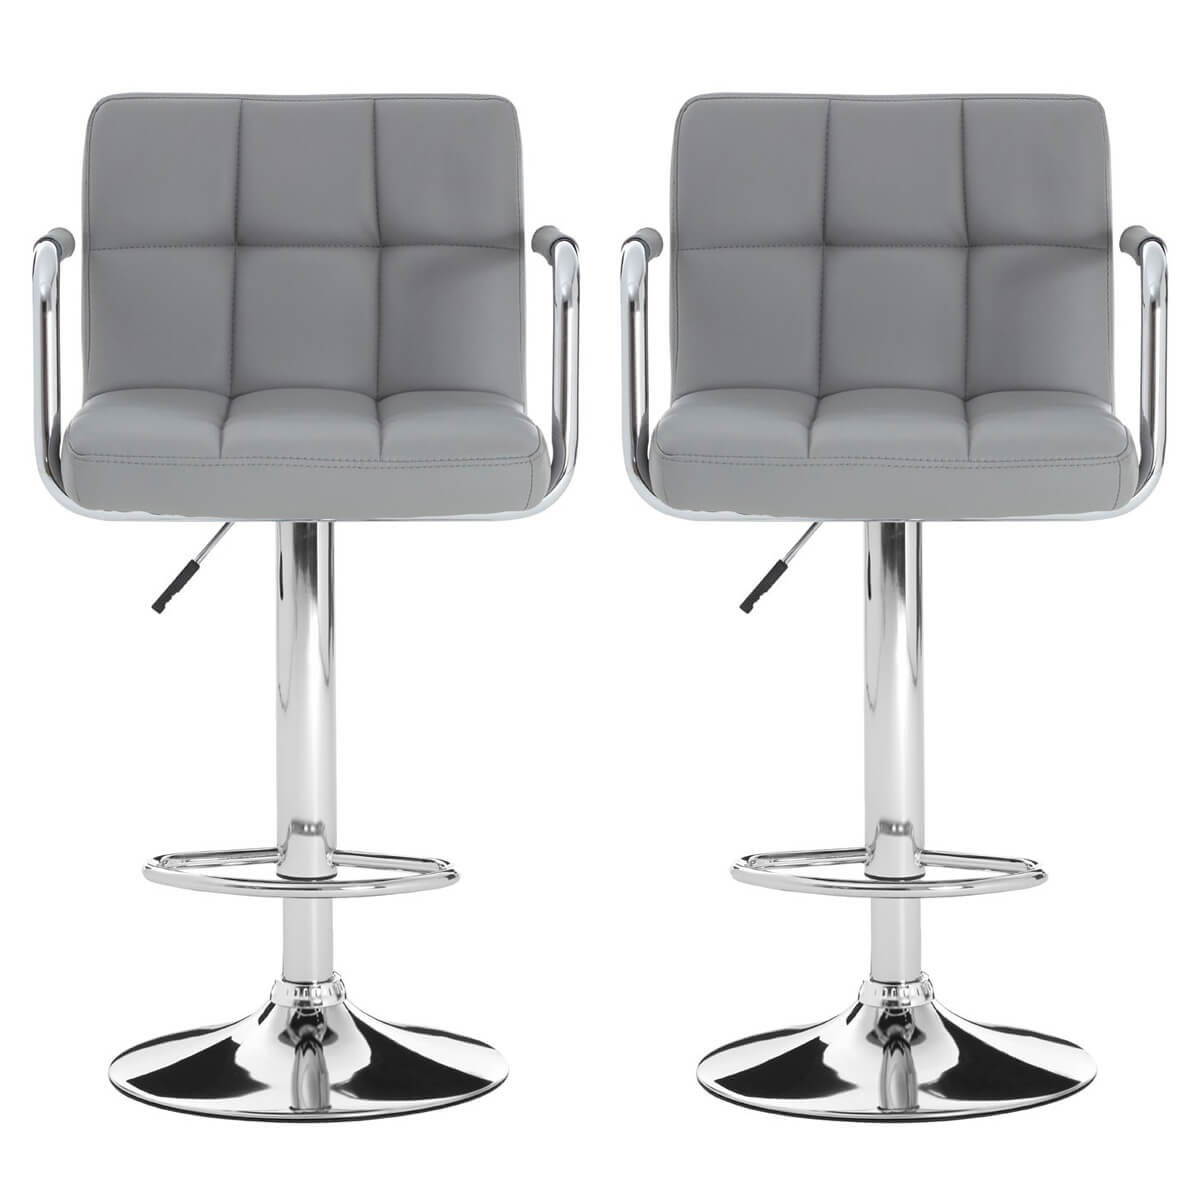 Stars Grey Faux Leather Bar Stool Amp Chrome Free Delivery